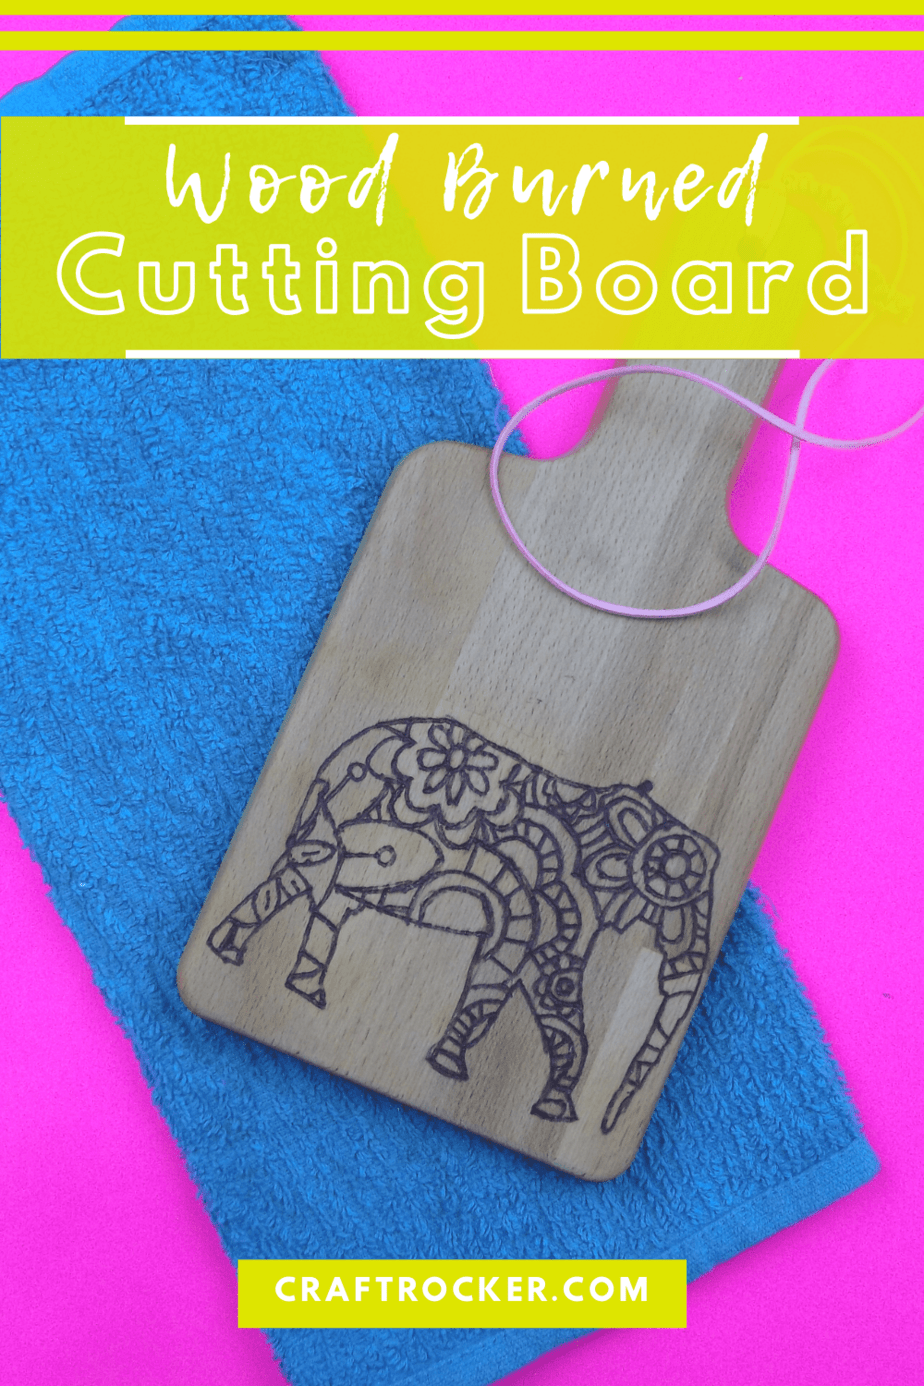 Elephant Wood Burned Cutting Board with text overlay - Wood Burned Cutting Board - Craft Rocker